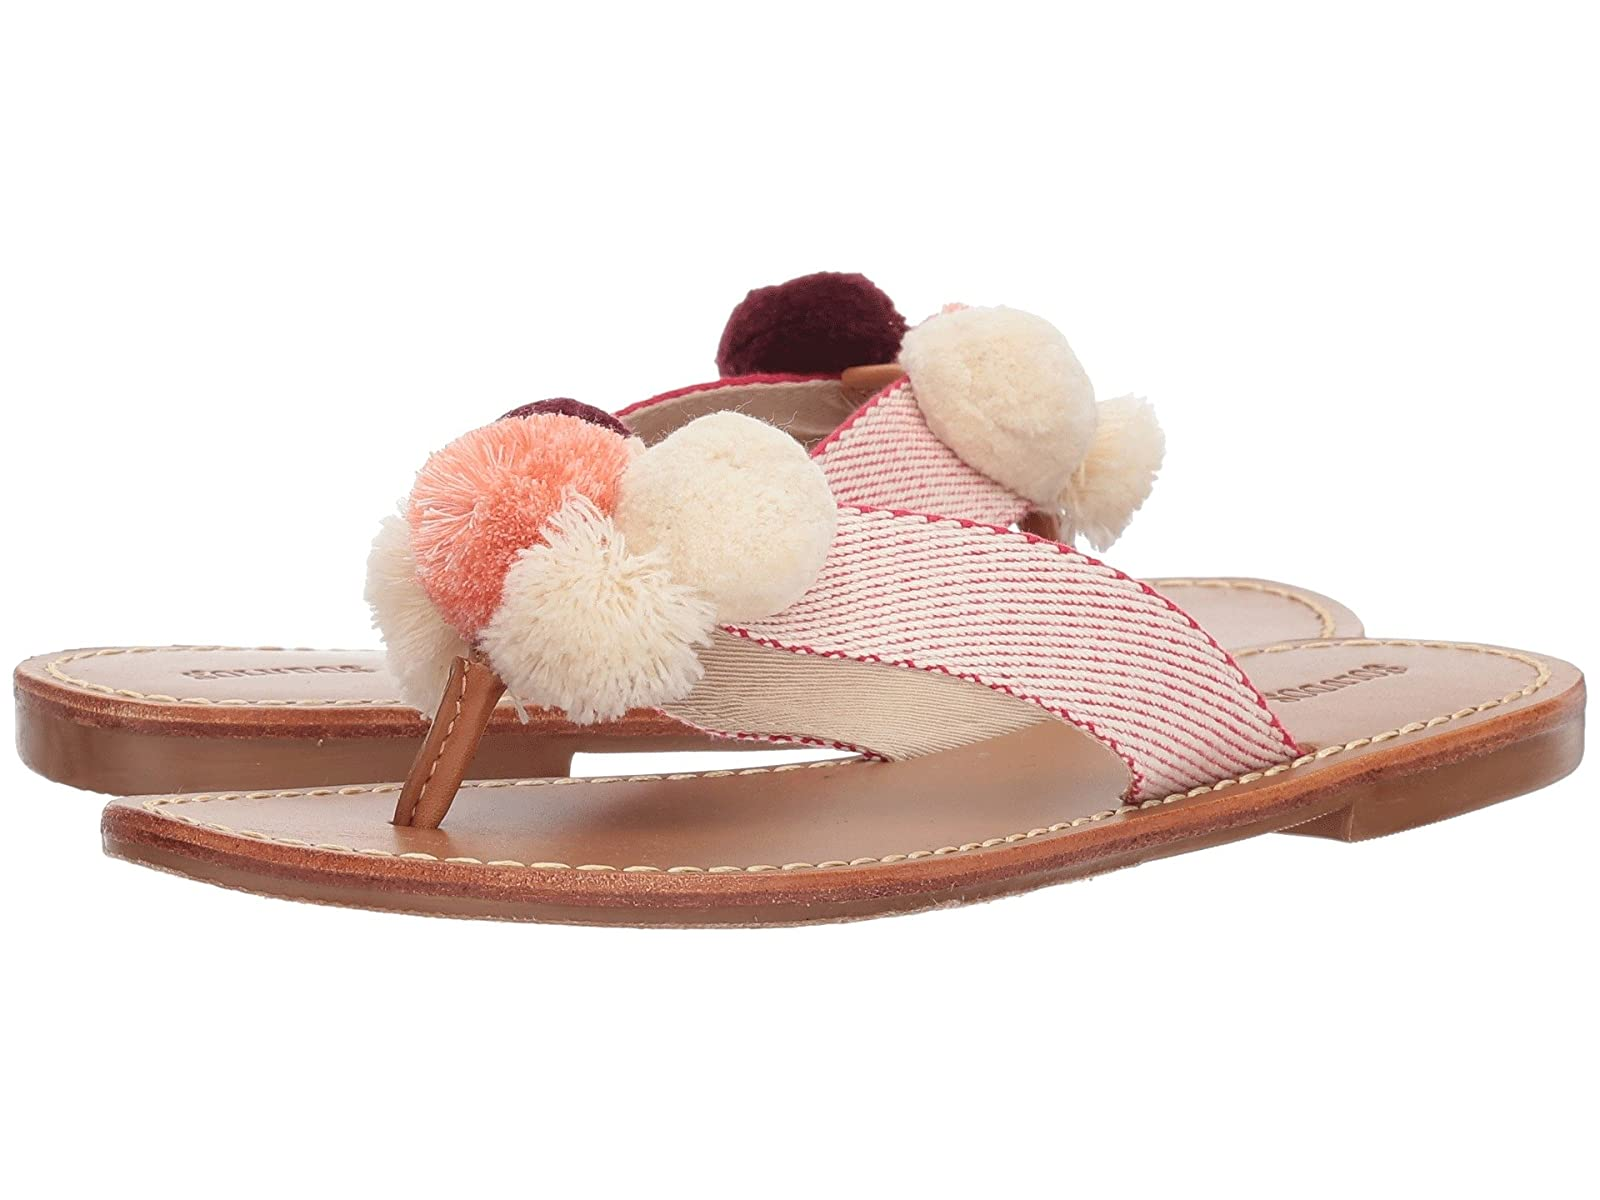 Soludos Capri Pom Pom SandalAtmospheric grades have affordable shoes